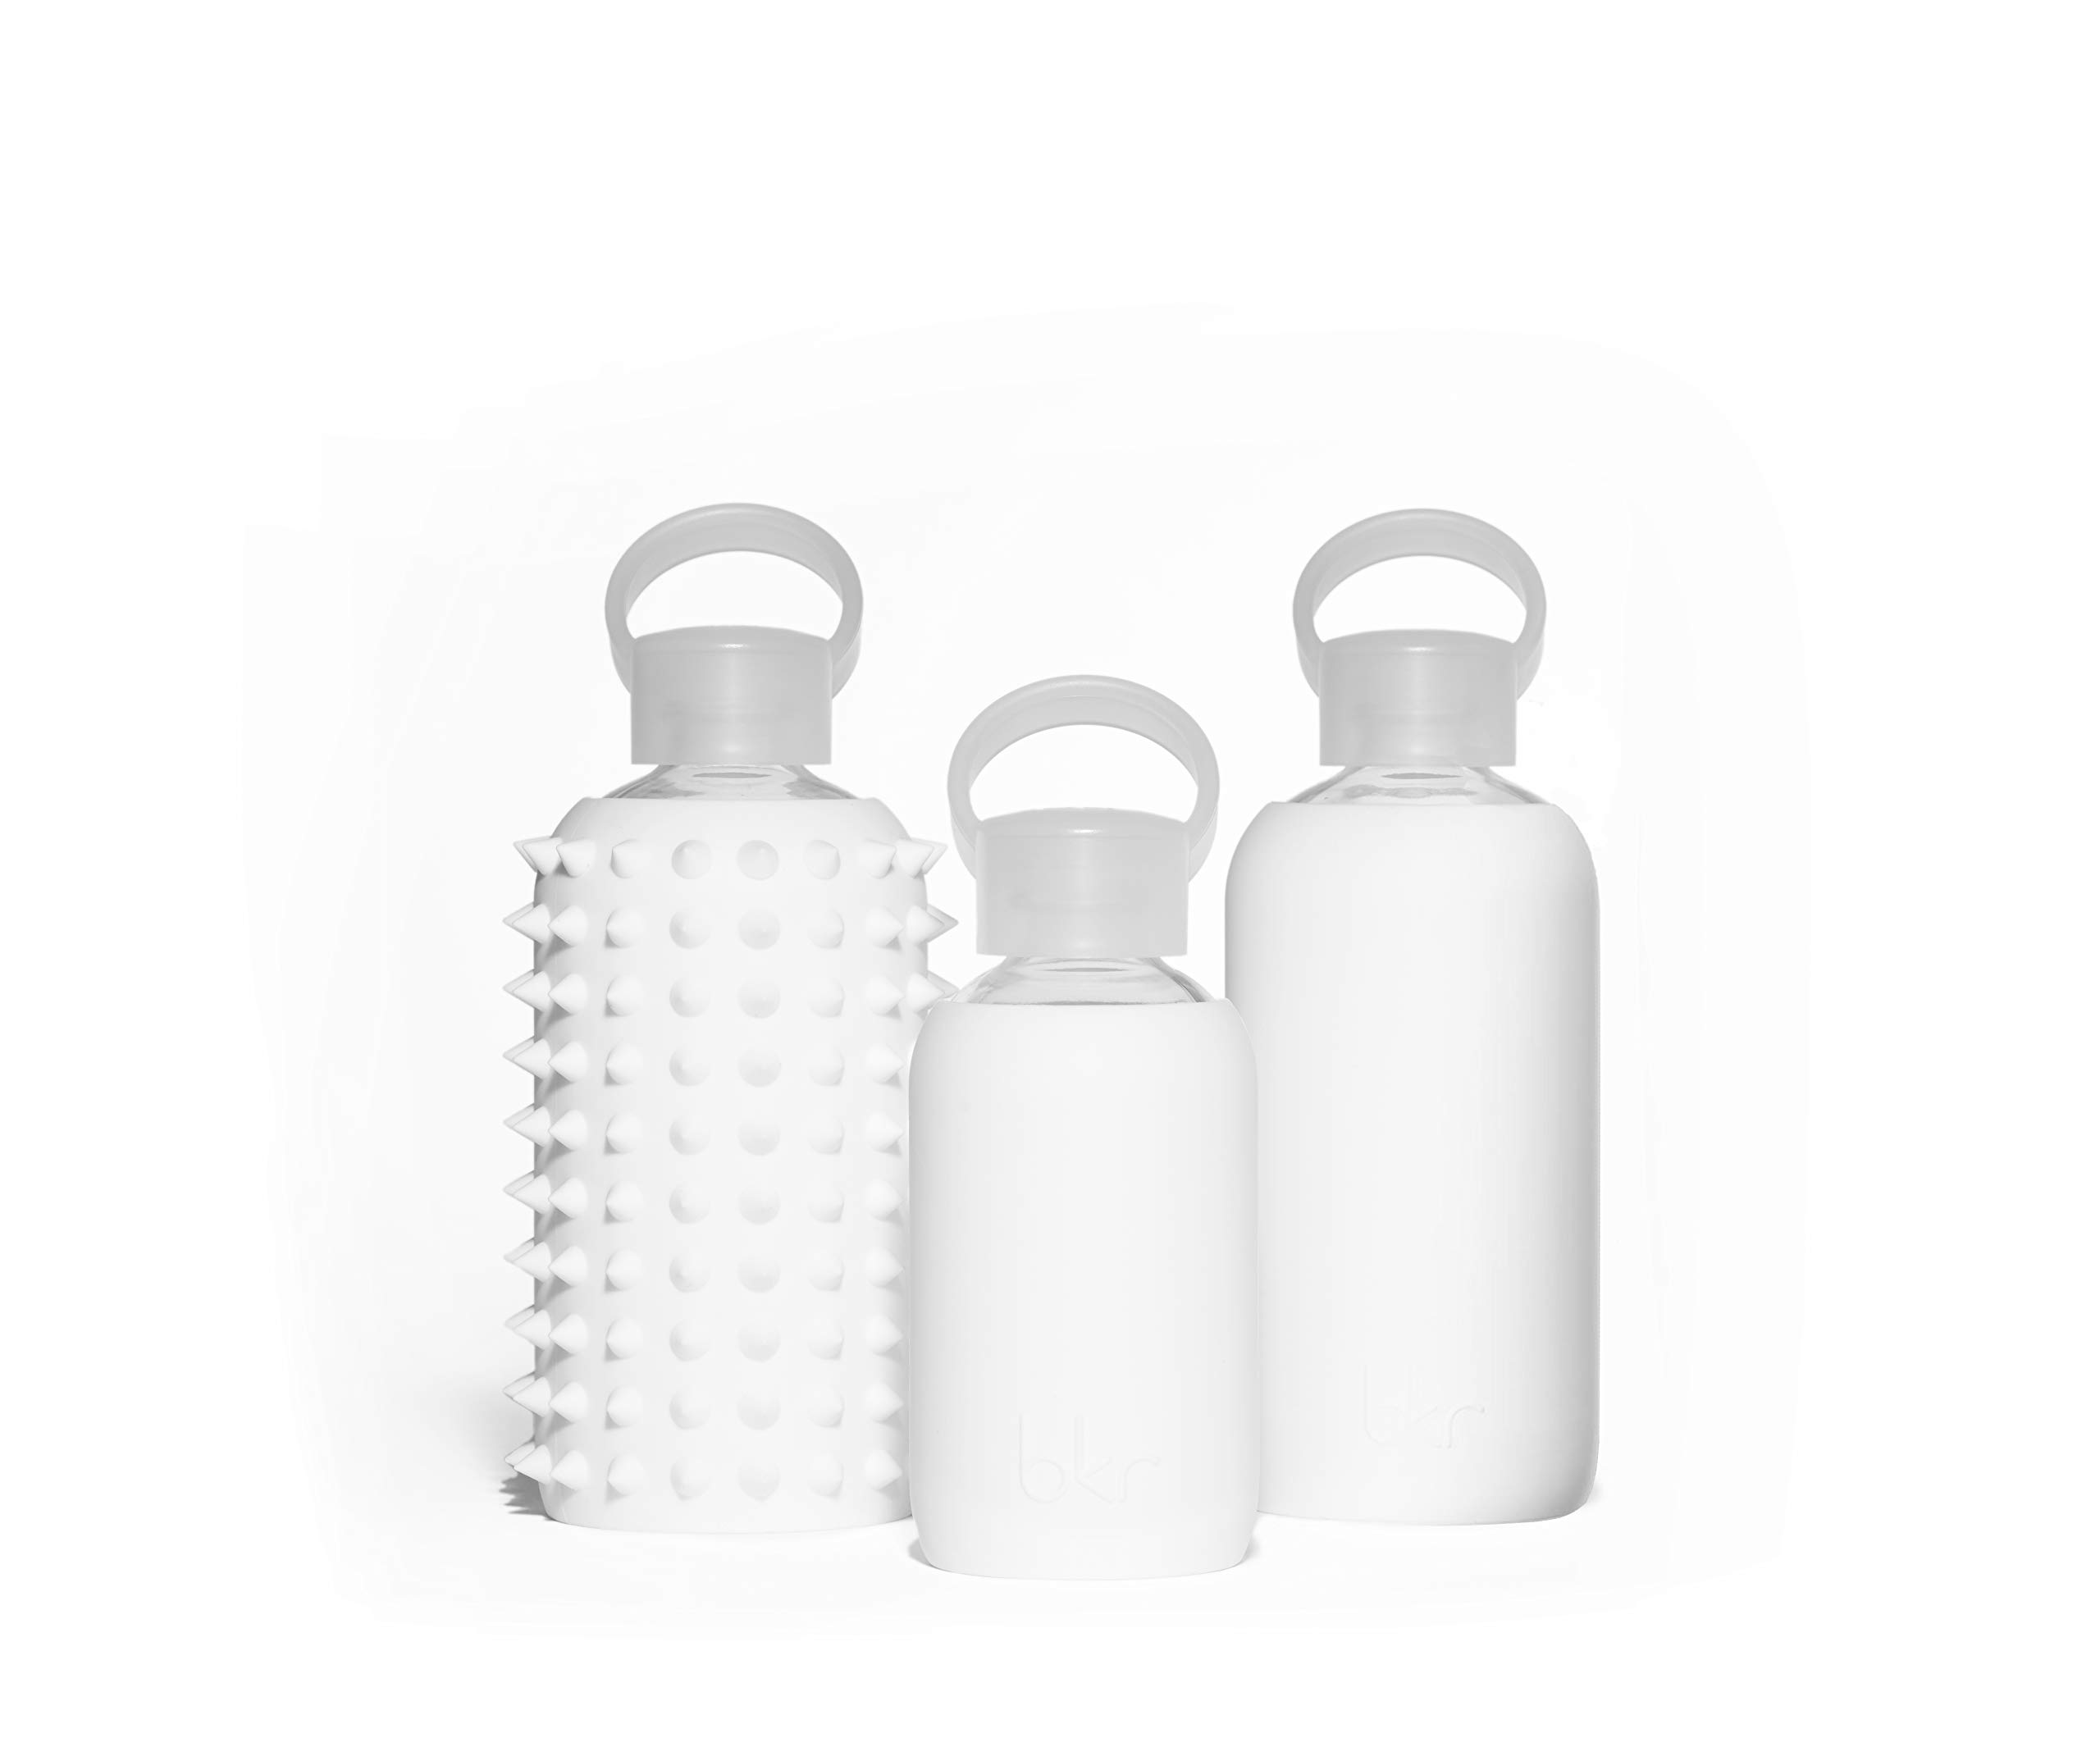 bkr Winter Glass Water Bottle with Smooth Silicone Sleeve for travel, Narrow Mouth, BPA-Free & Dishwasher Safe, Opaque White, 8 oz / 250 mL by bkr (Image #5)